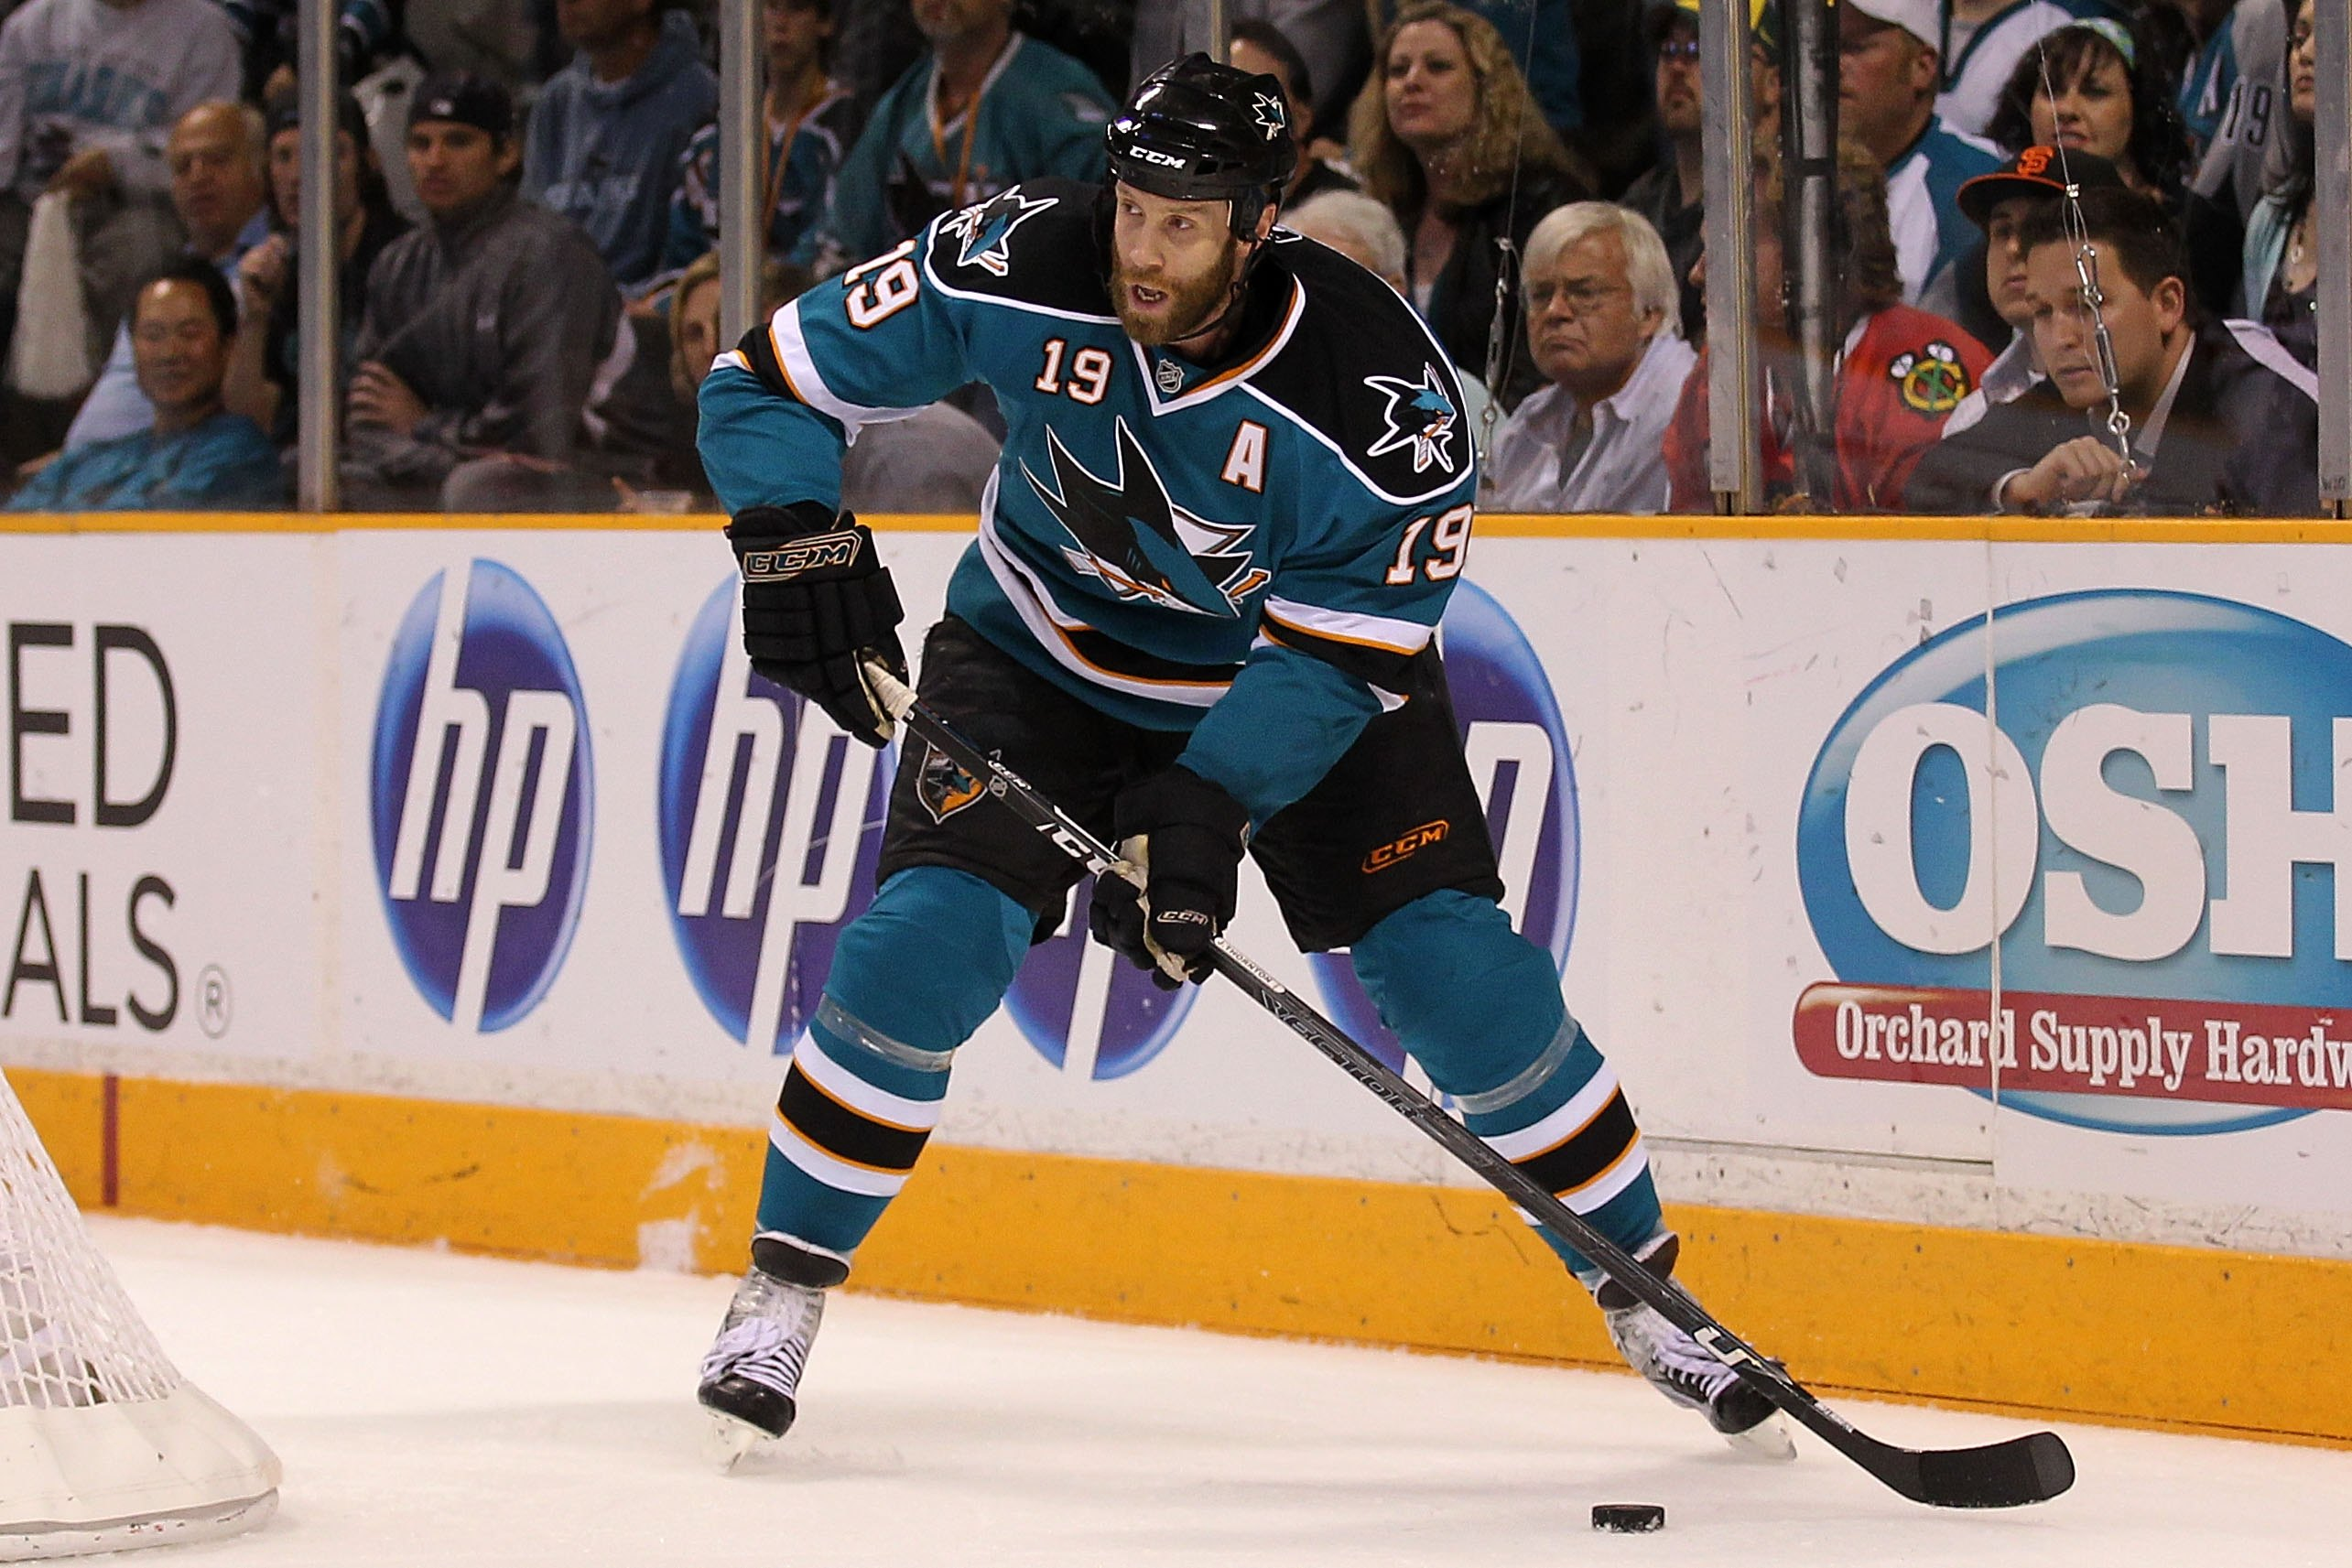 SAN JOSE, CA - MAY 18:  Joe Thornton #19 of the San Jose Sharks moves the puck while taking on the Chicago Blackhawks in Game Two of the Western Conference Finals during the 2010 NHL Stanley Cup Playoffs at HP Pavilion on May 18, 2010 in San Jose, Califor